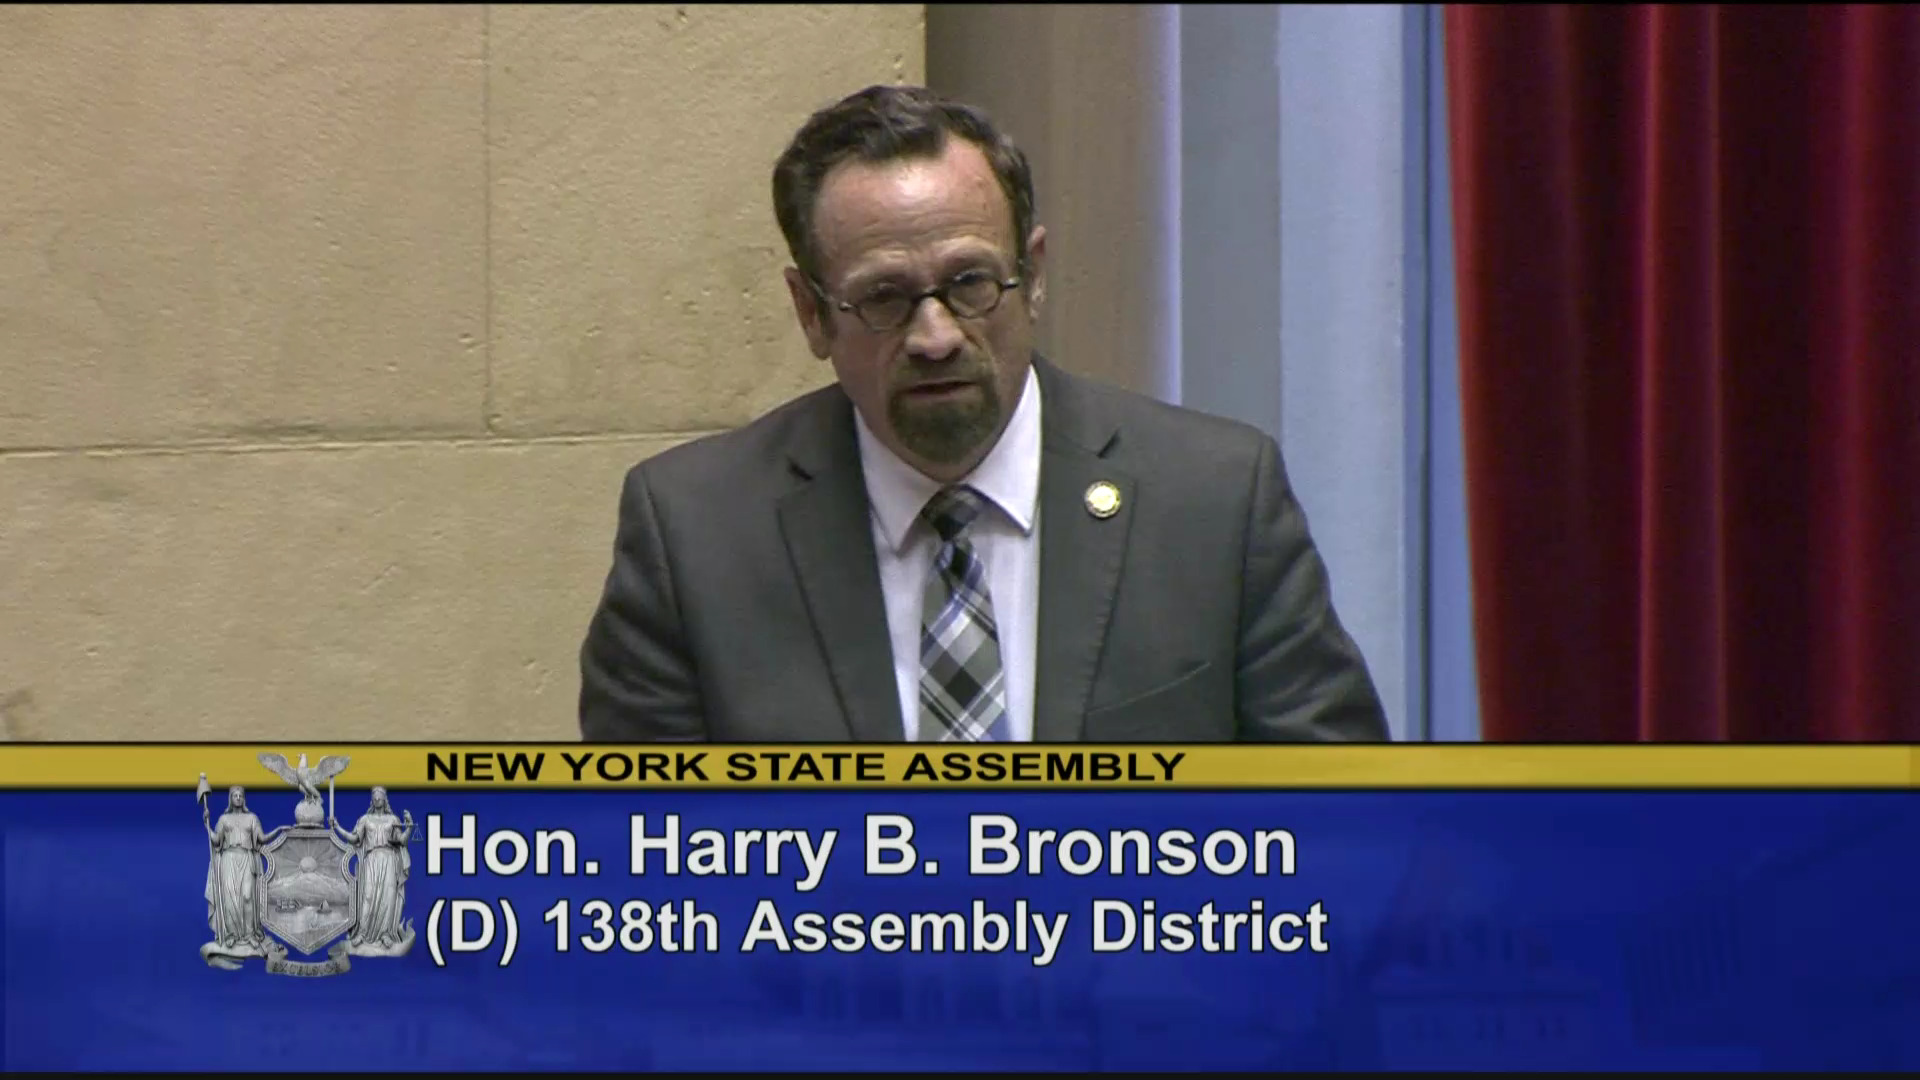 Bronson: Data Needed to Provide Programs, Protections for LGBTQ Community